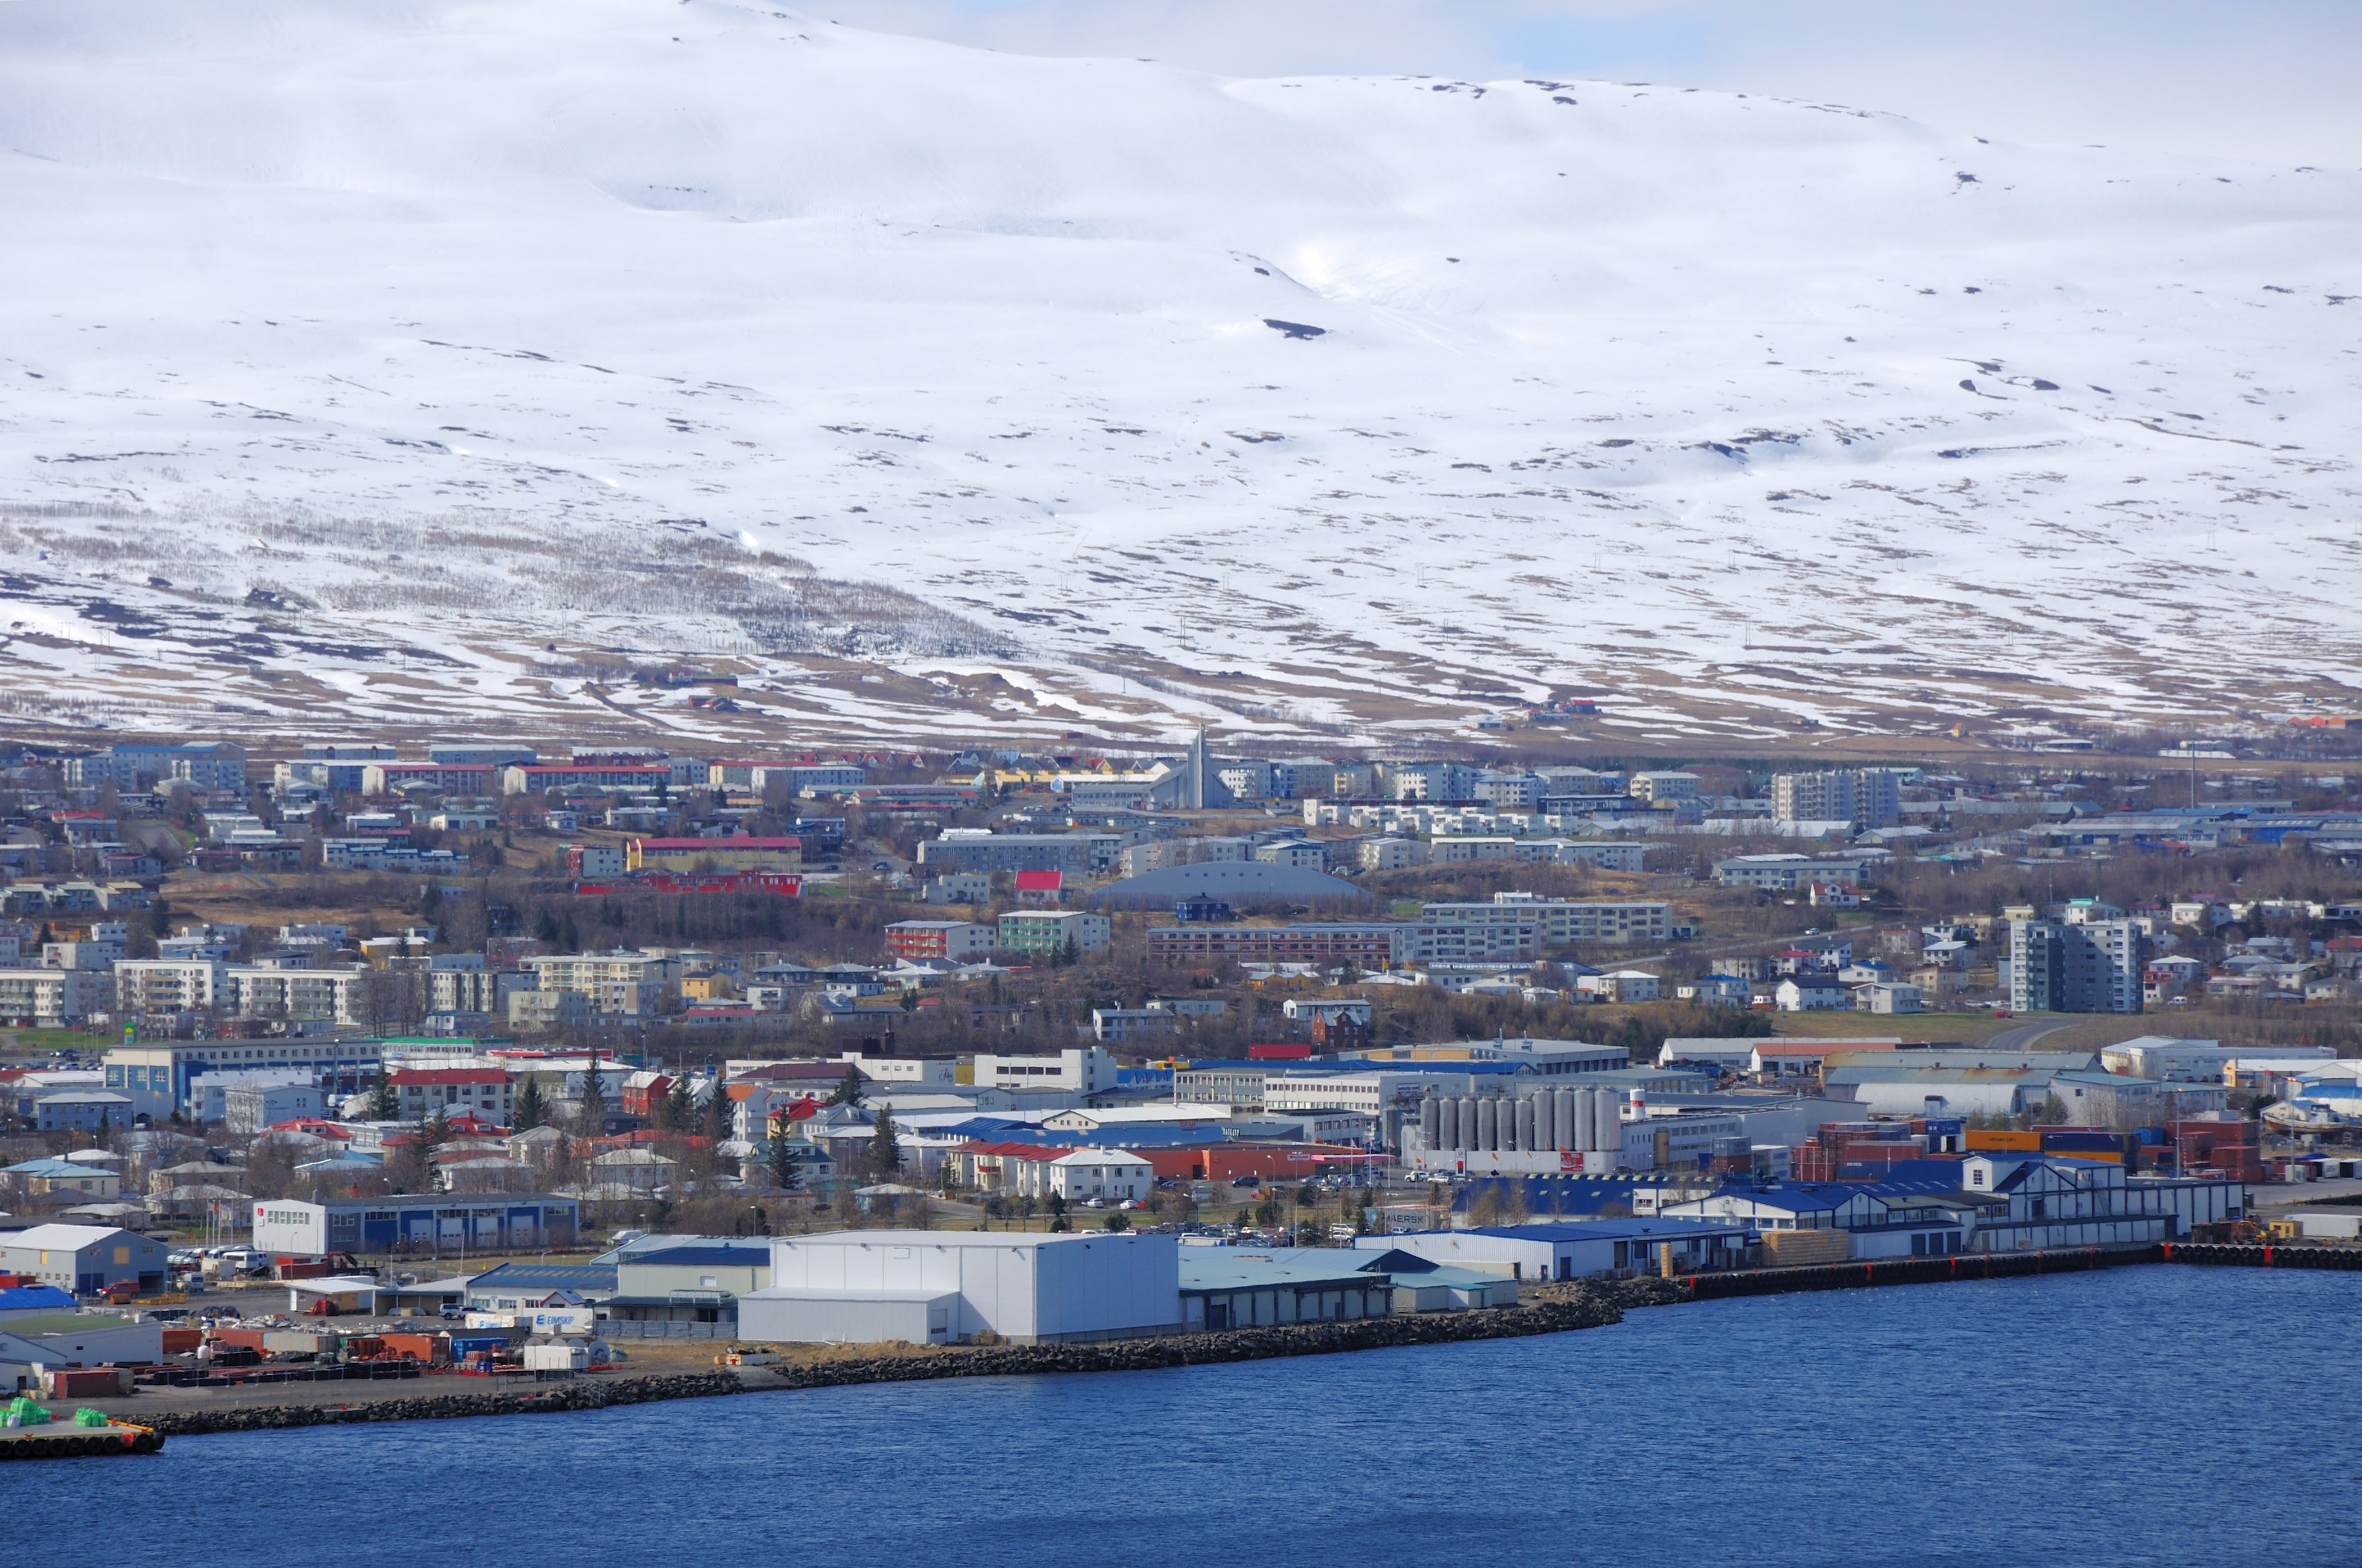 There are many hotels and hostels in Akureyri, the 'Capital of the North'.